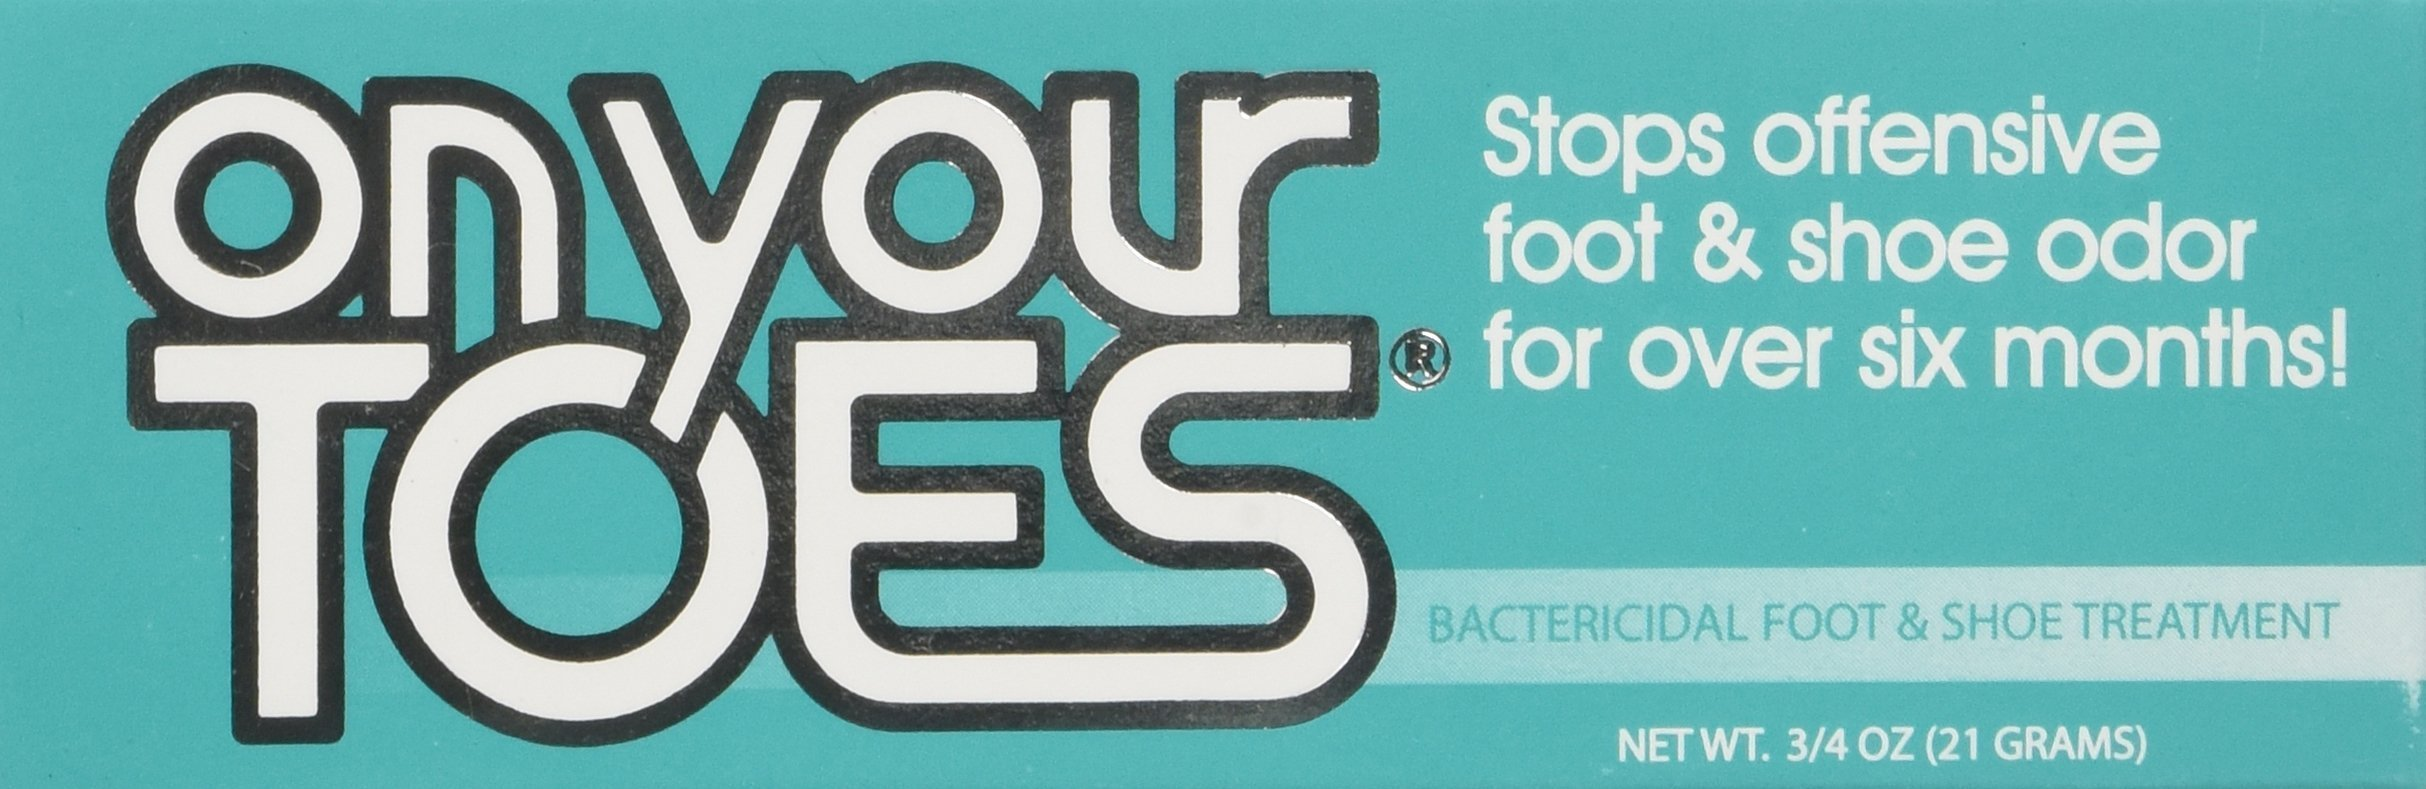 On Your Toes Foot Bactericide Powder - Eliminates Foot Odor for Six Months, 21 grams (One Pack) by On Your Toes